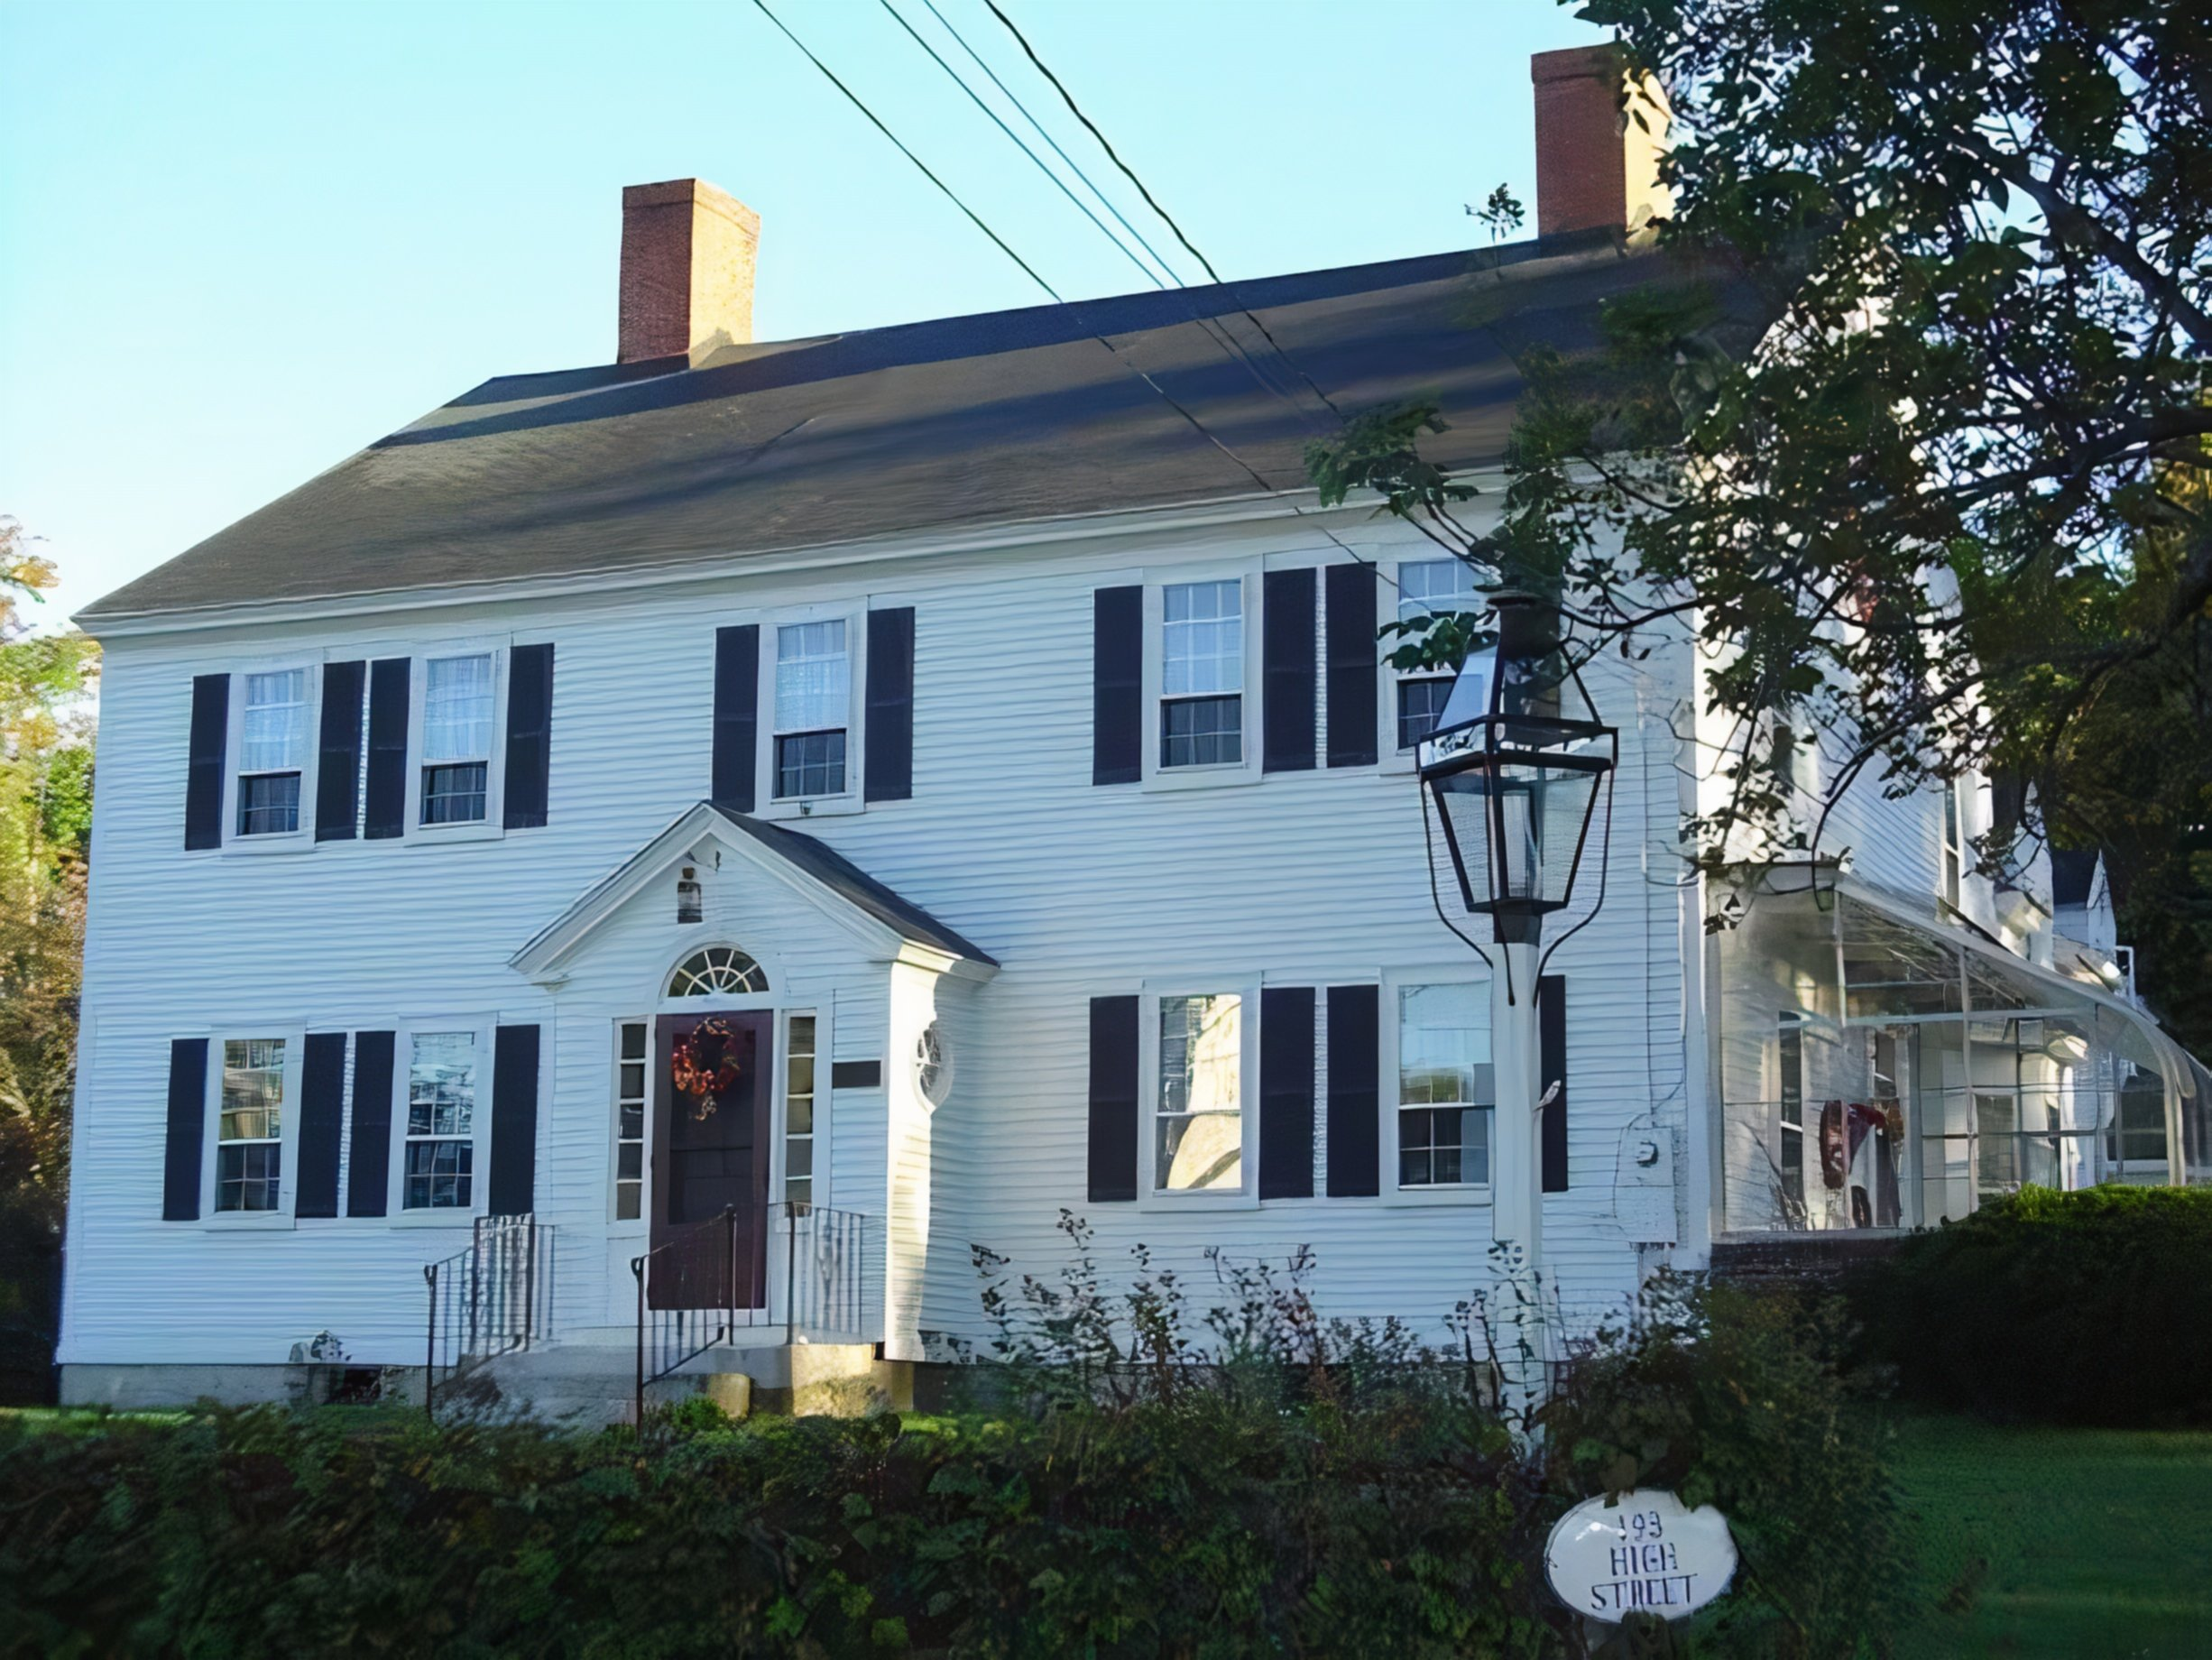 A large white building in front of a house at Stephen Clay Homestead Bed and Breakfast.